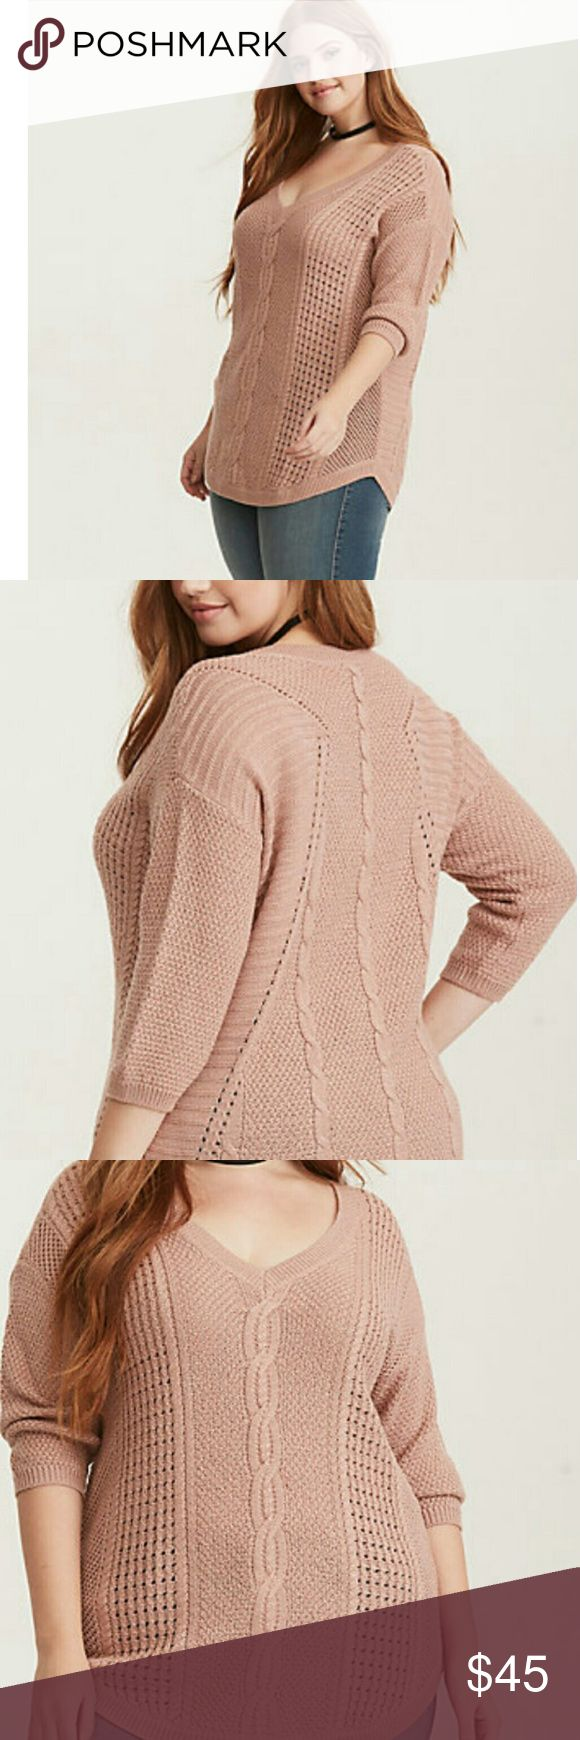 Torrid Blush Sweater Brand New, 1XL Brand New!!! Blush sweater, very beautiful, Never worn, with tags. torrid Sweaters Crew & Scoop Necks